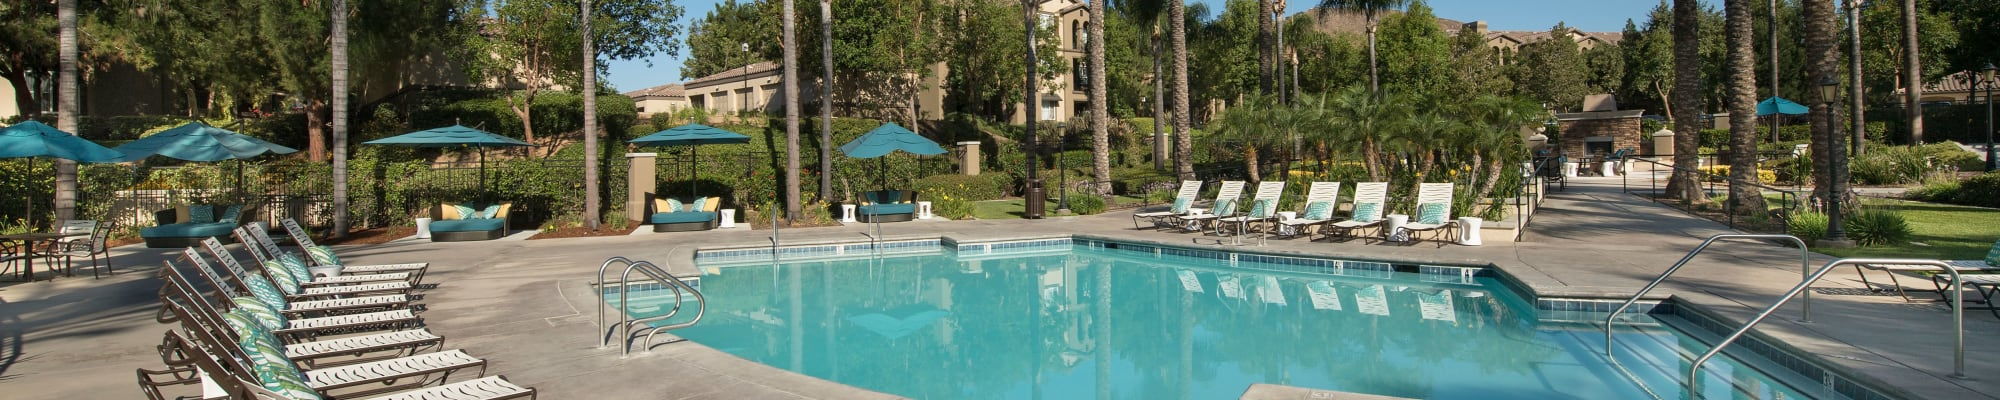 Amenities at Esplanade Apartment Homes in Riverside, California